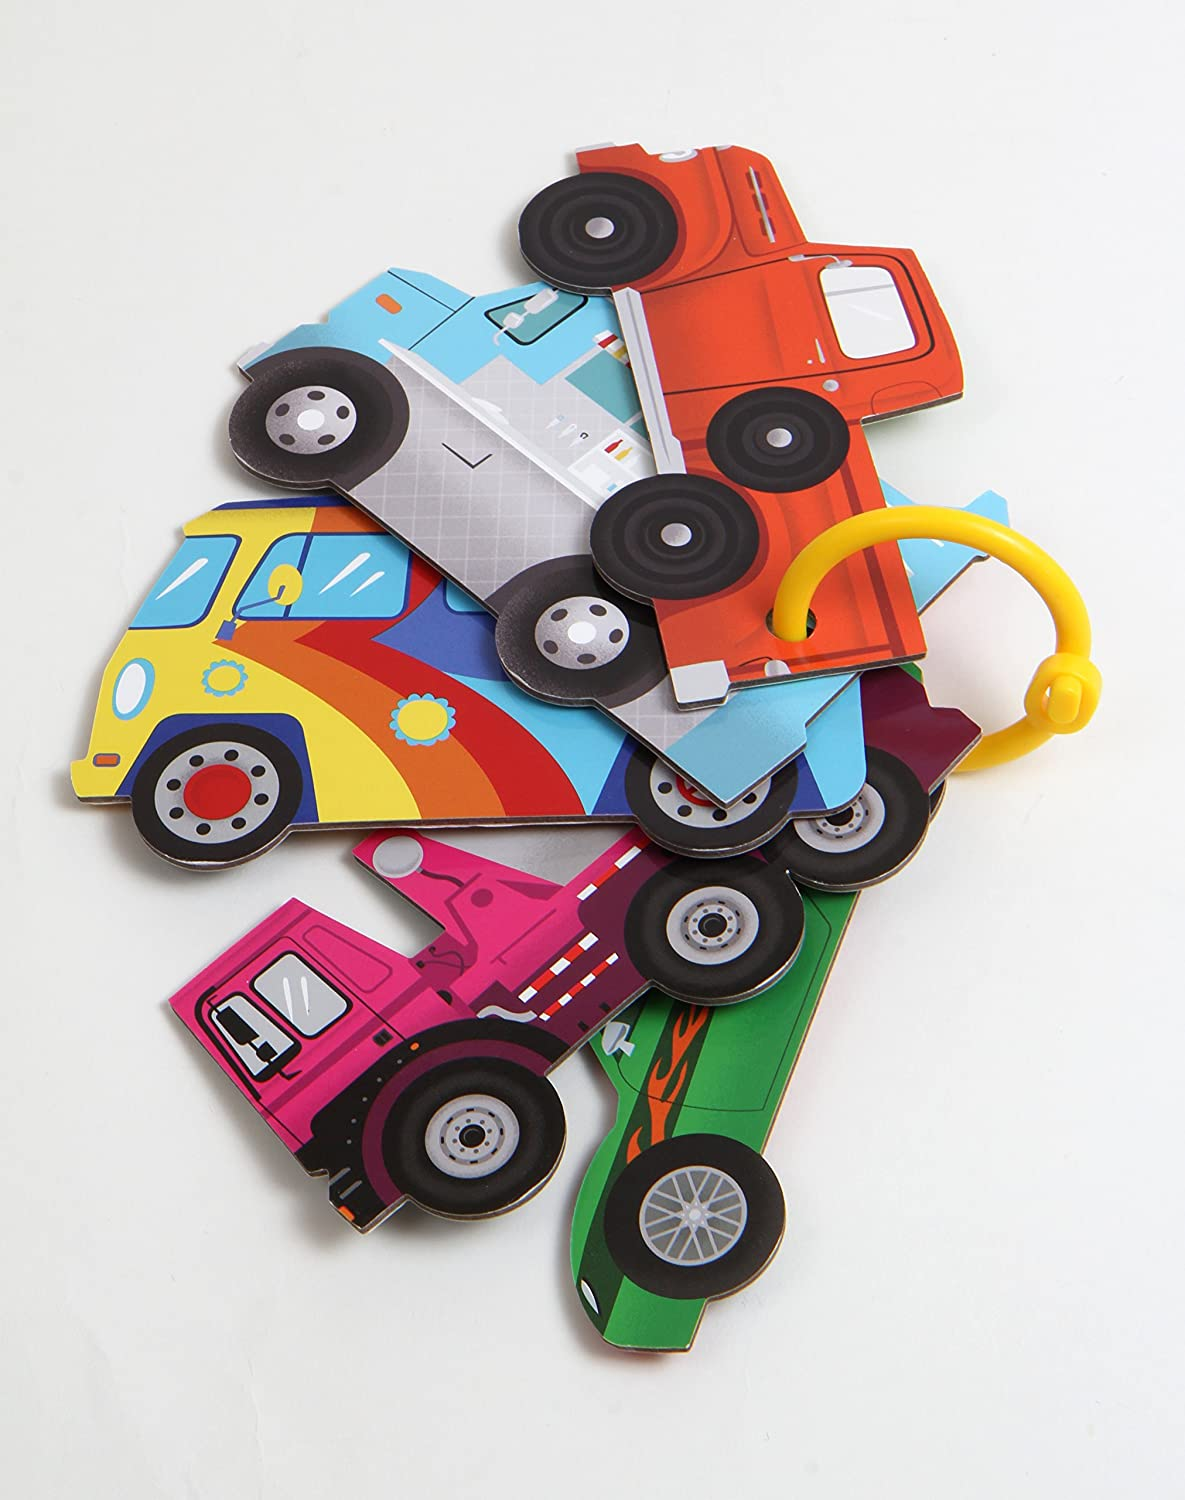 Vehicle Themed Stroller Cards, Unique Gift for New Mom /& Dad Bumper-to-Bumper Stroller Cars